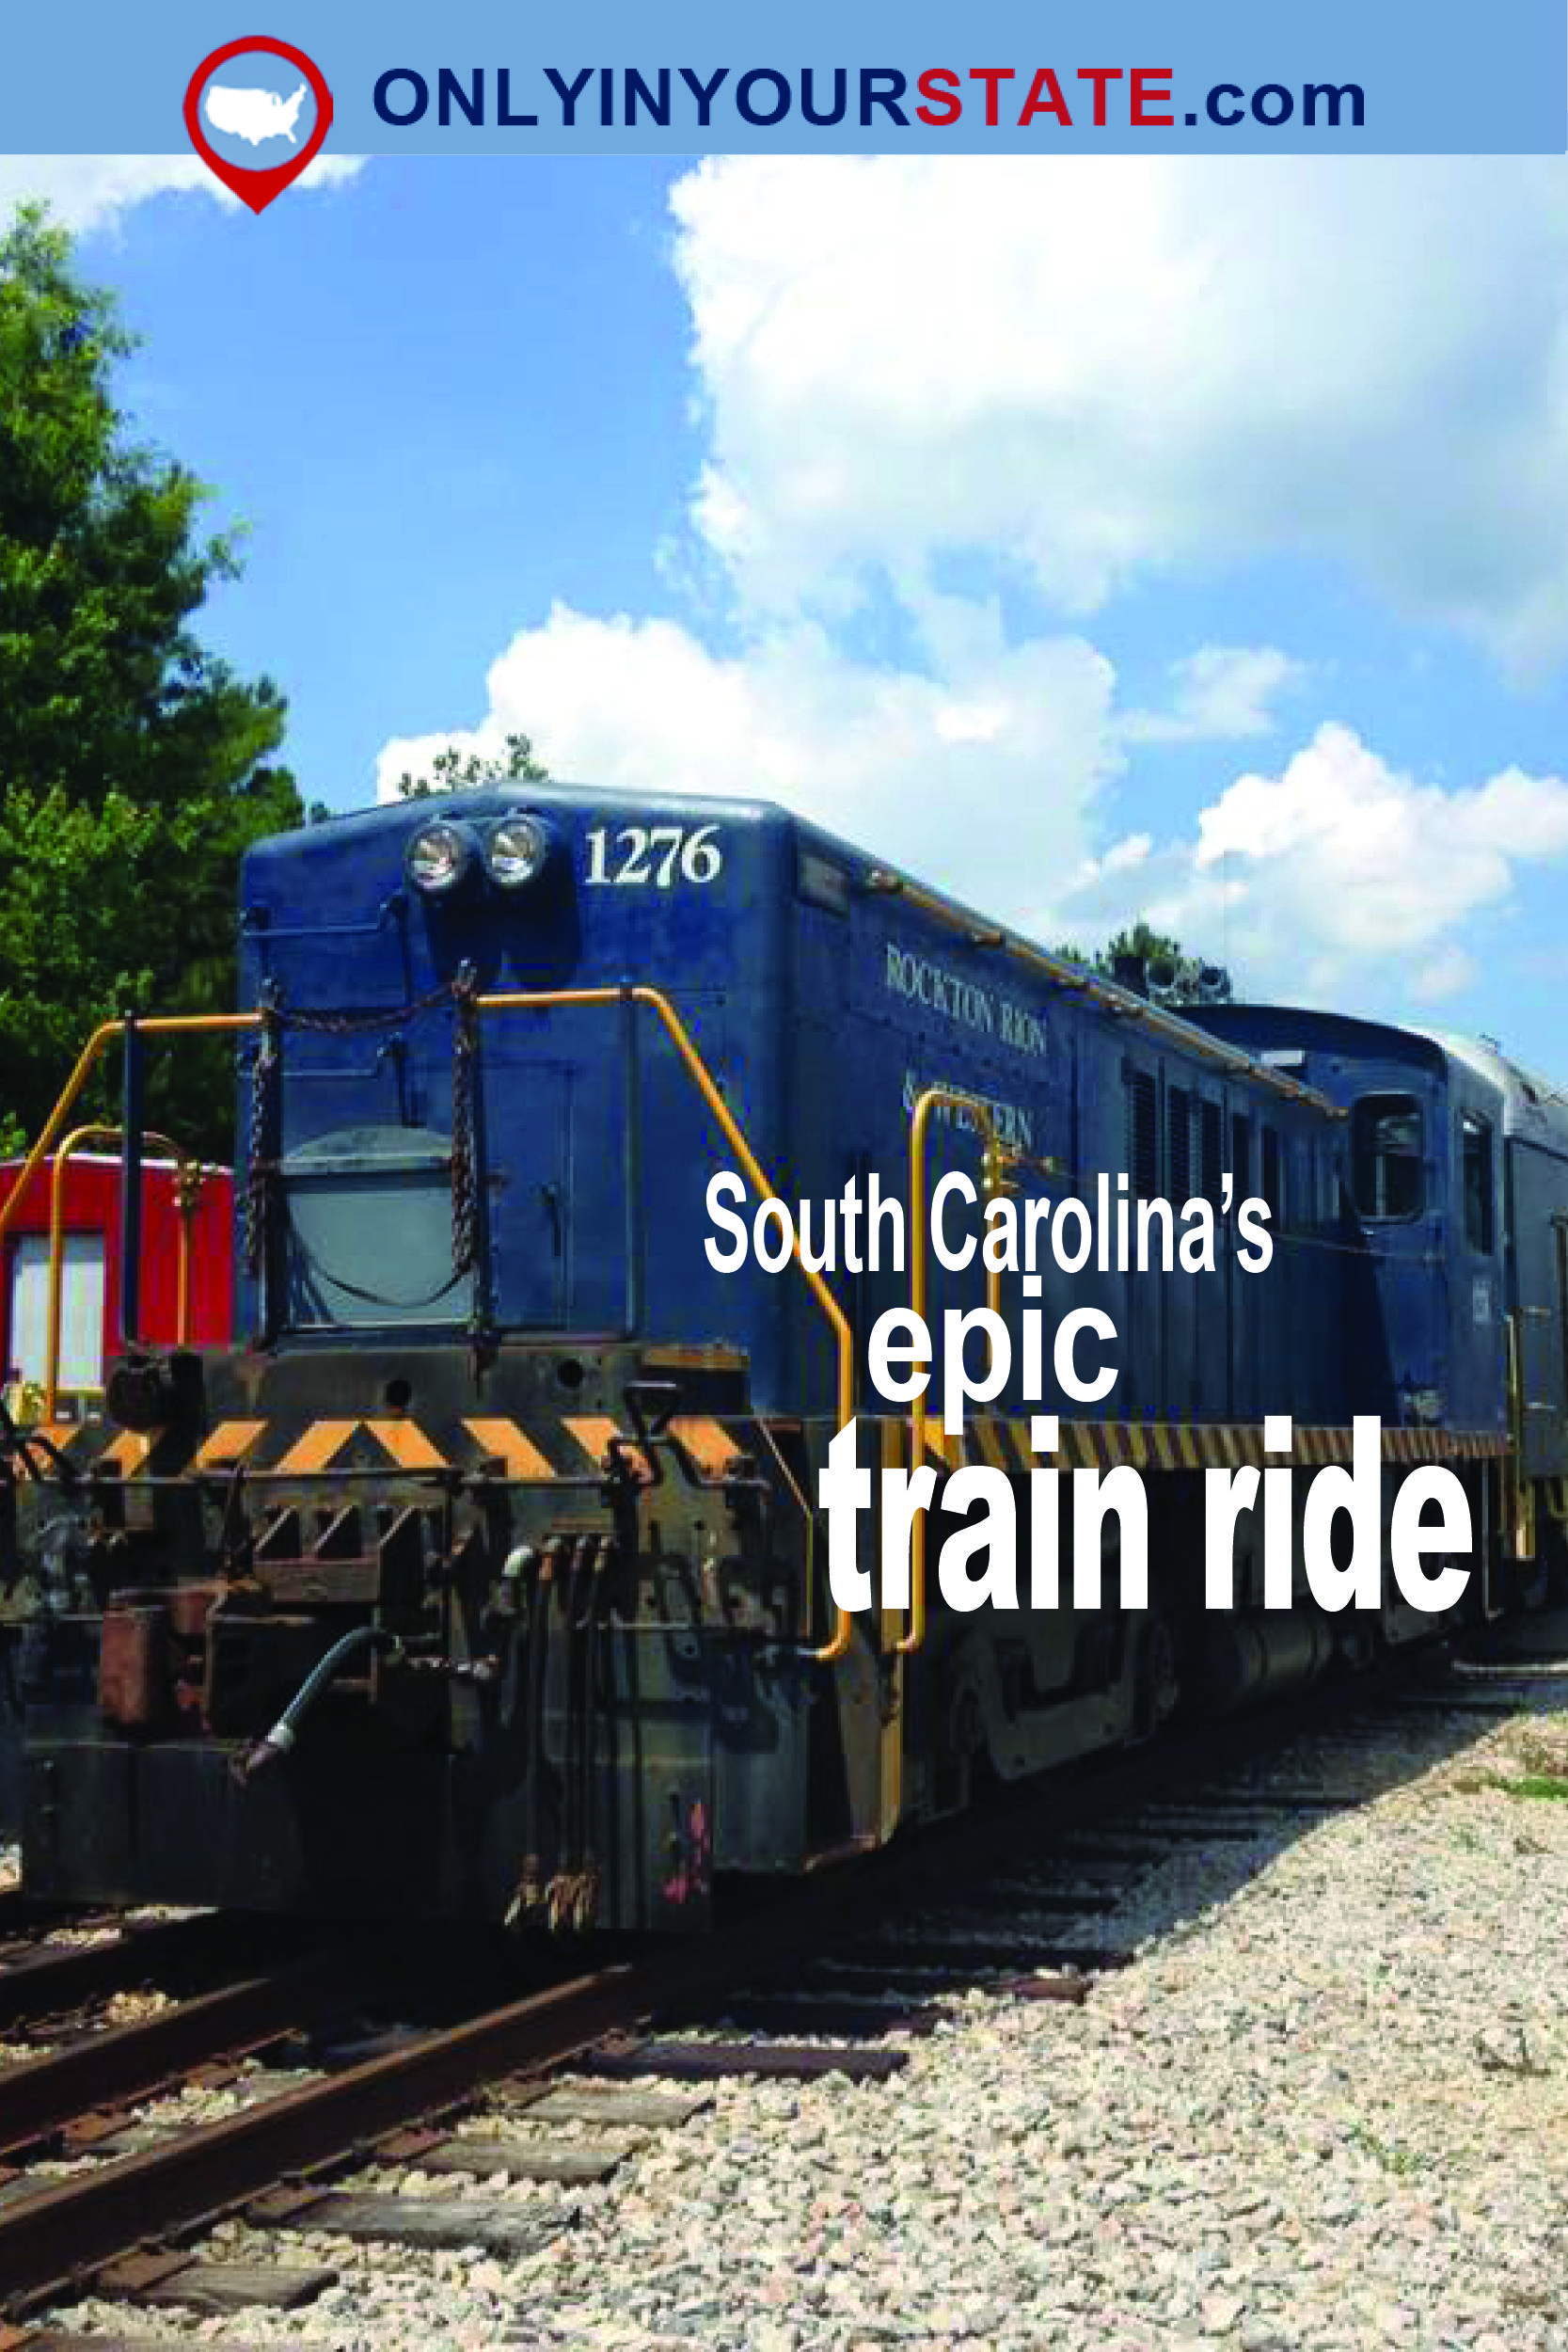 Travel South Carolina Attractions Activities Things To Do Site Seeing Train Ride Family Friendly Unique Explore